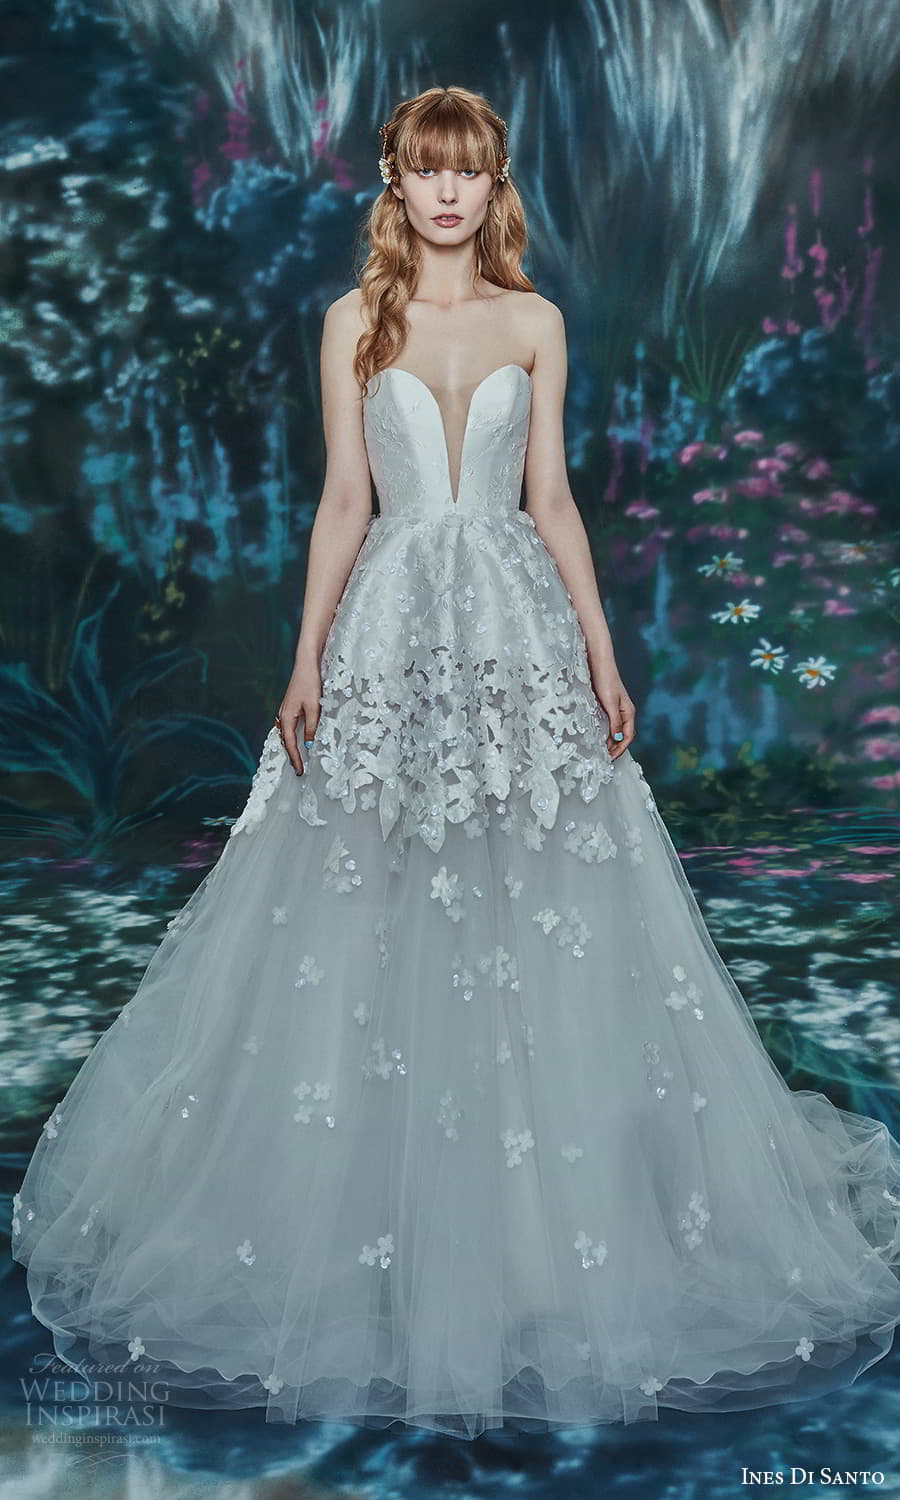 ines di santo spring 2022 bridal strapless sweetheart neckline fully embellished a line ball gown wedding dress chapel train (7) mv